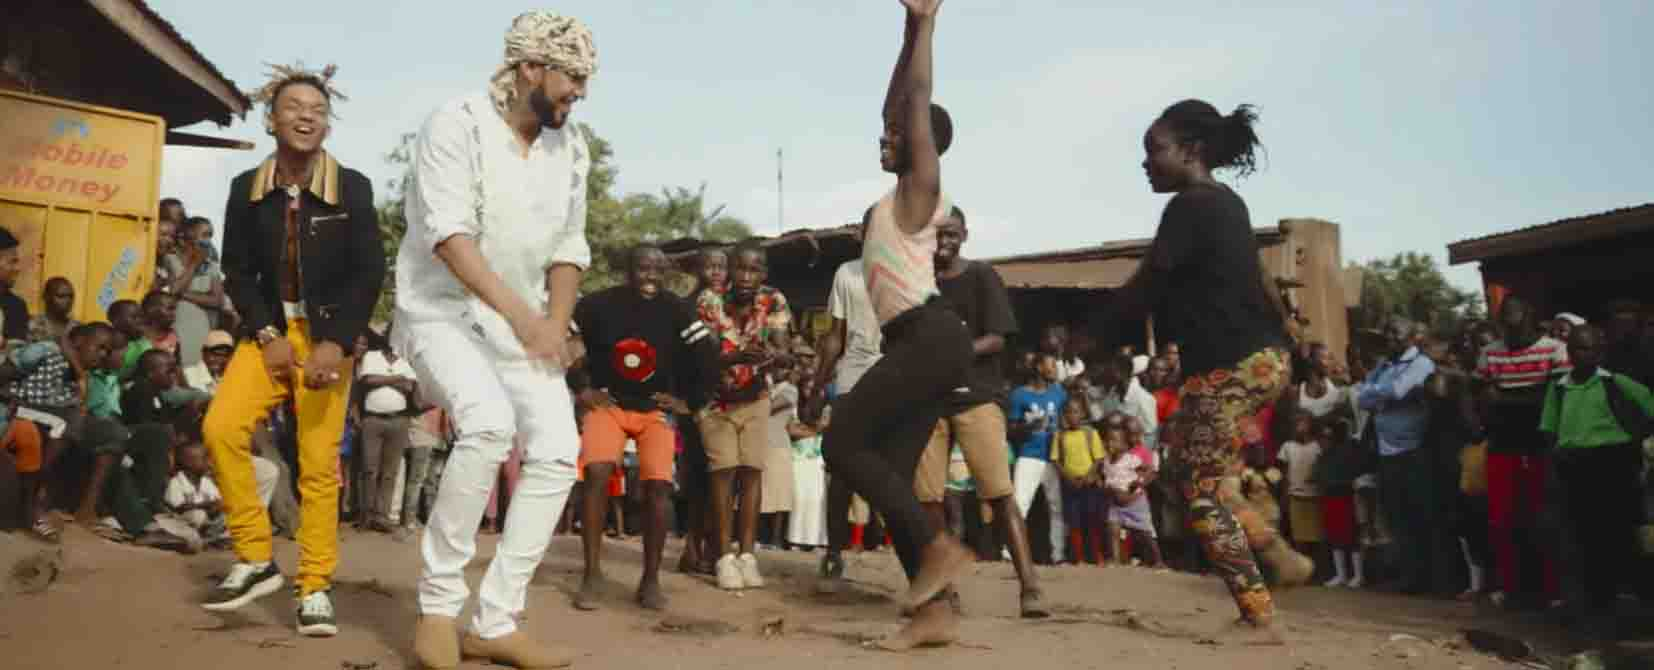 french montana unforgettable music video